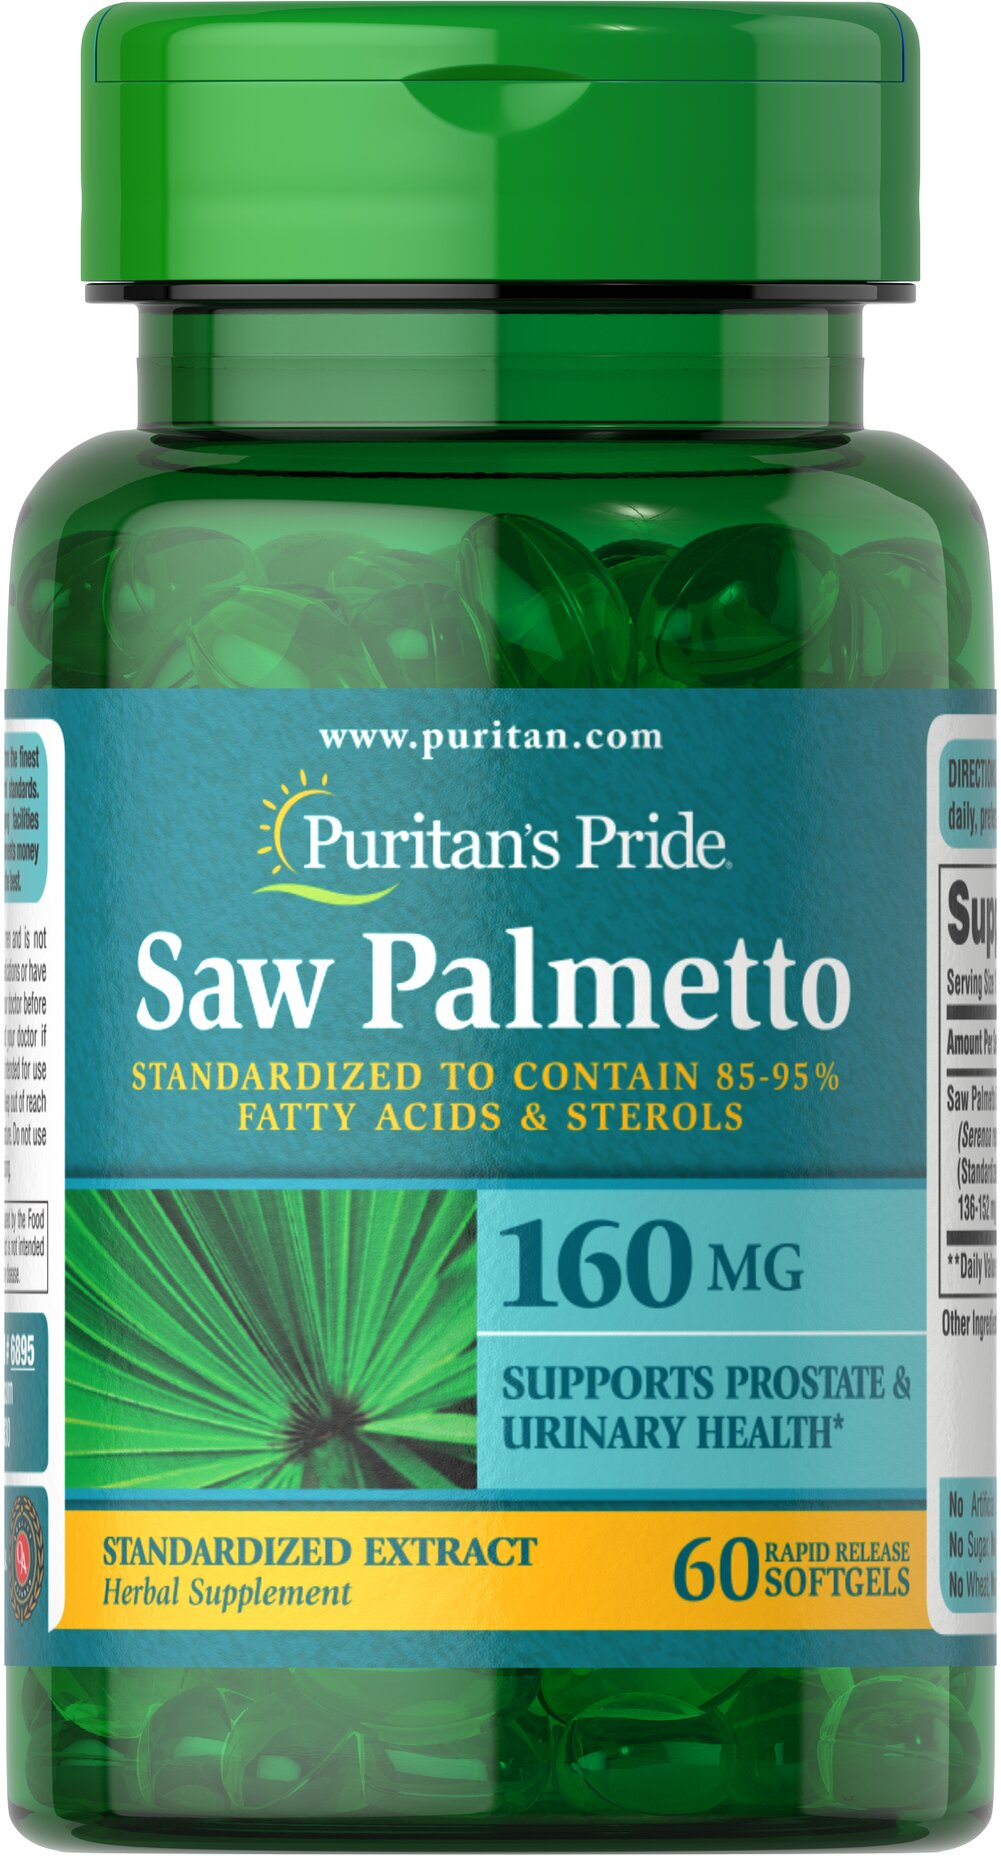 Saw Palmetto Standardized Extract 160 mg <p>Men the world over are discovering the beneficial properties of Saw Palmetto. Saw Palmetto contains phytochemicals, which support prostate health and urinary health.**</p><p>Our Saw Palmetto formula is fully assayed and standardized to ensure that each softgel contains 85-95% fatty acids and active sterols, which guarantees bioactivity.**</p> 60 Softgels 160 mg $10.19